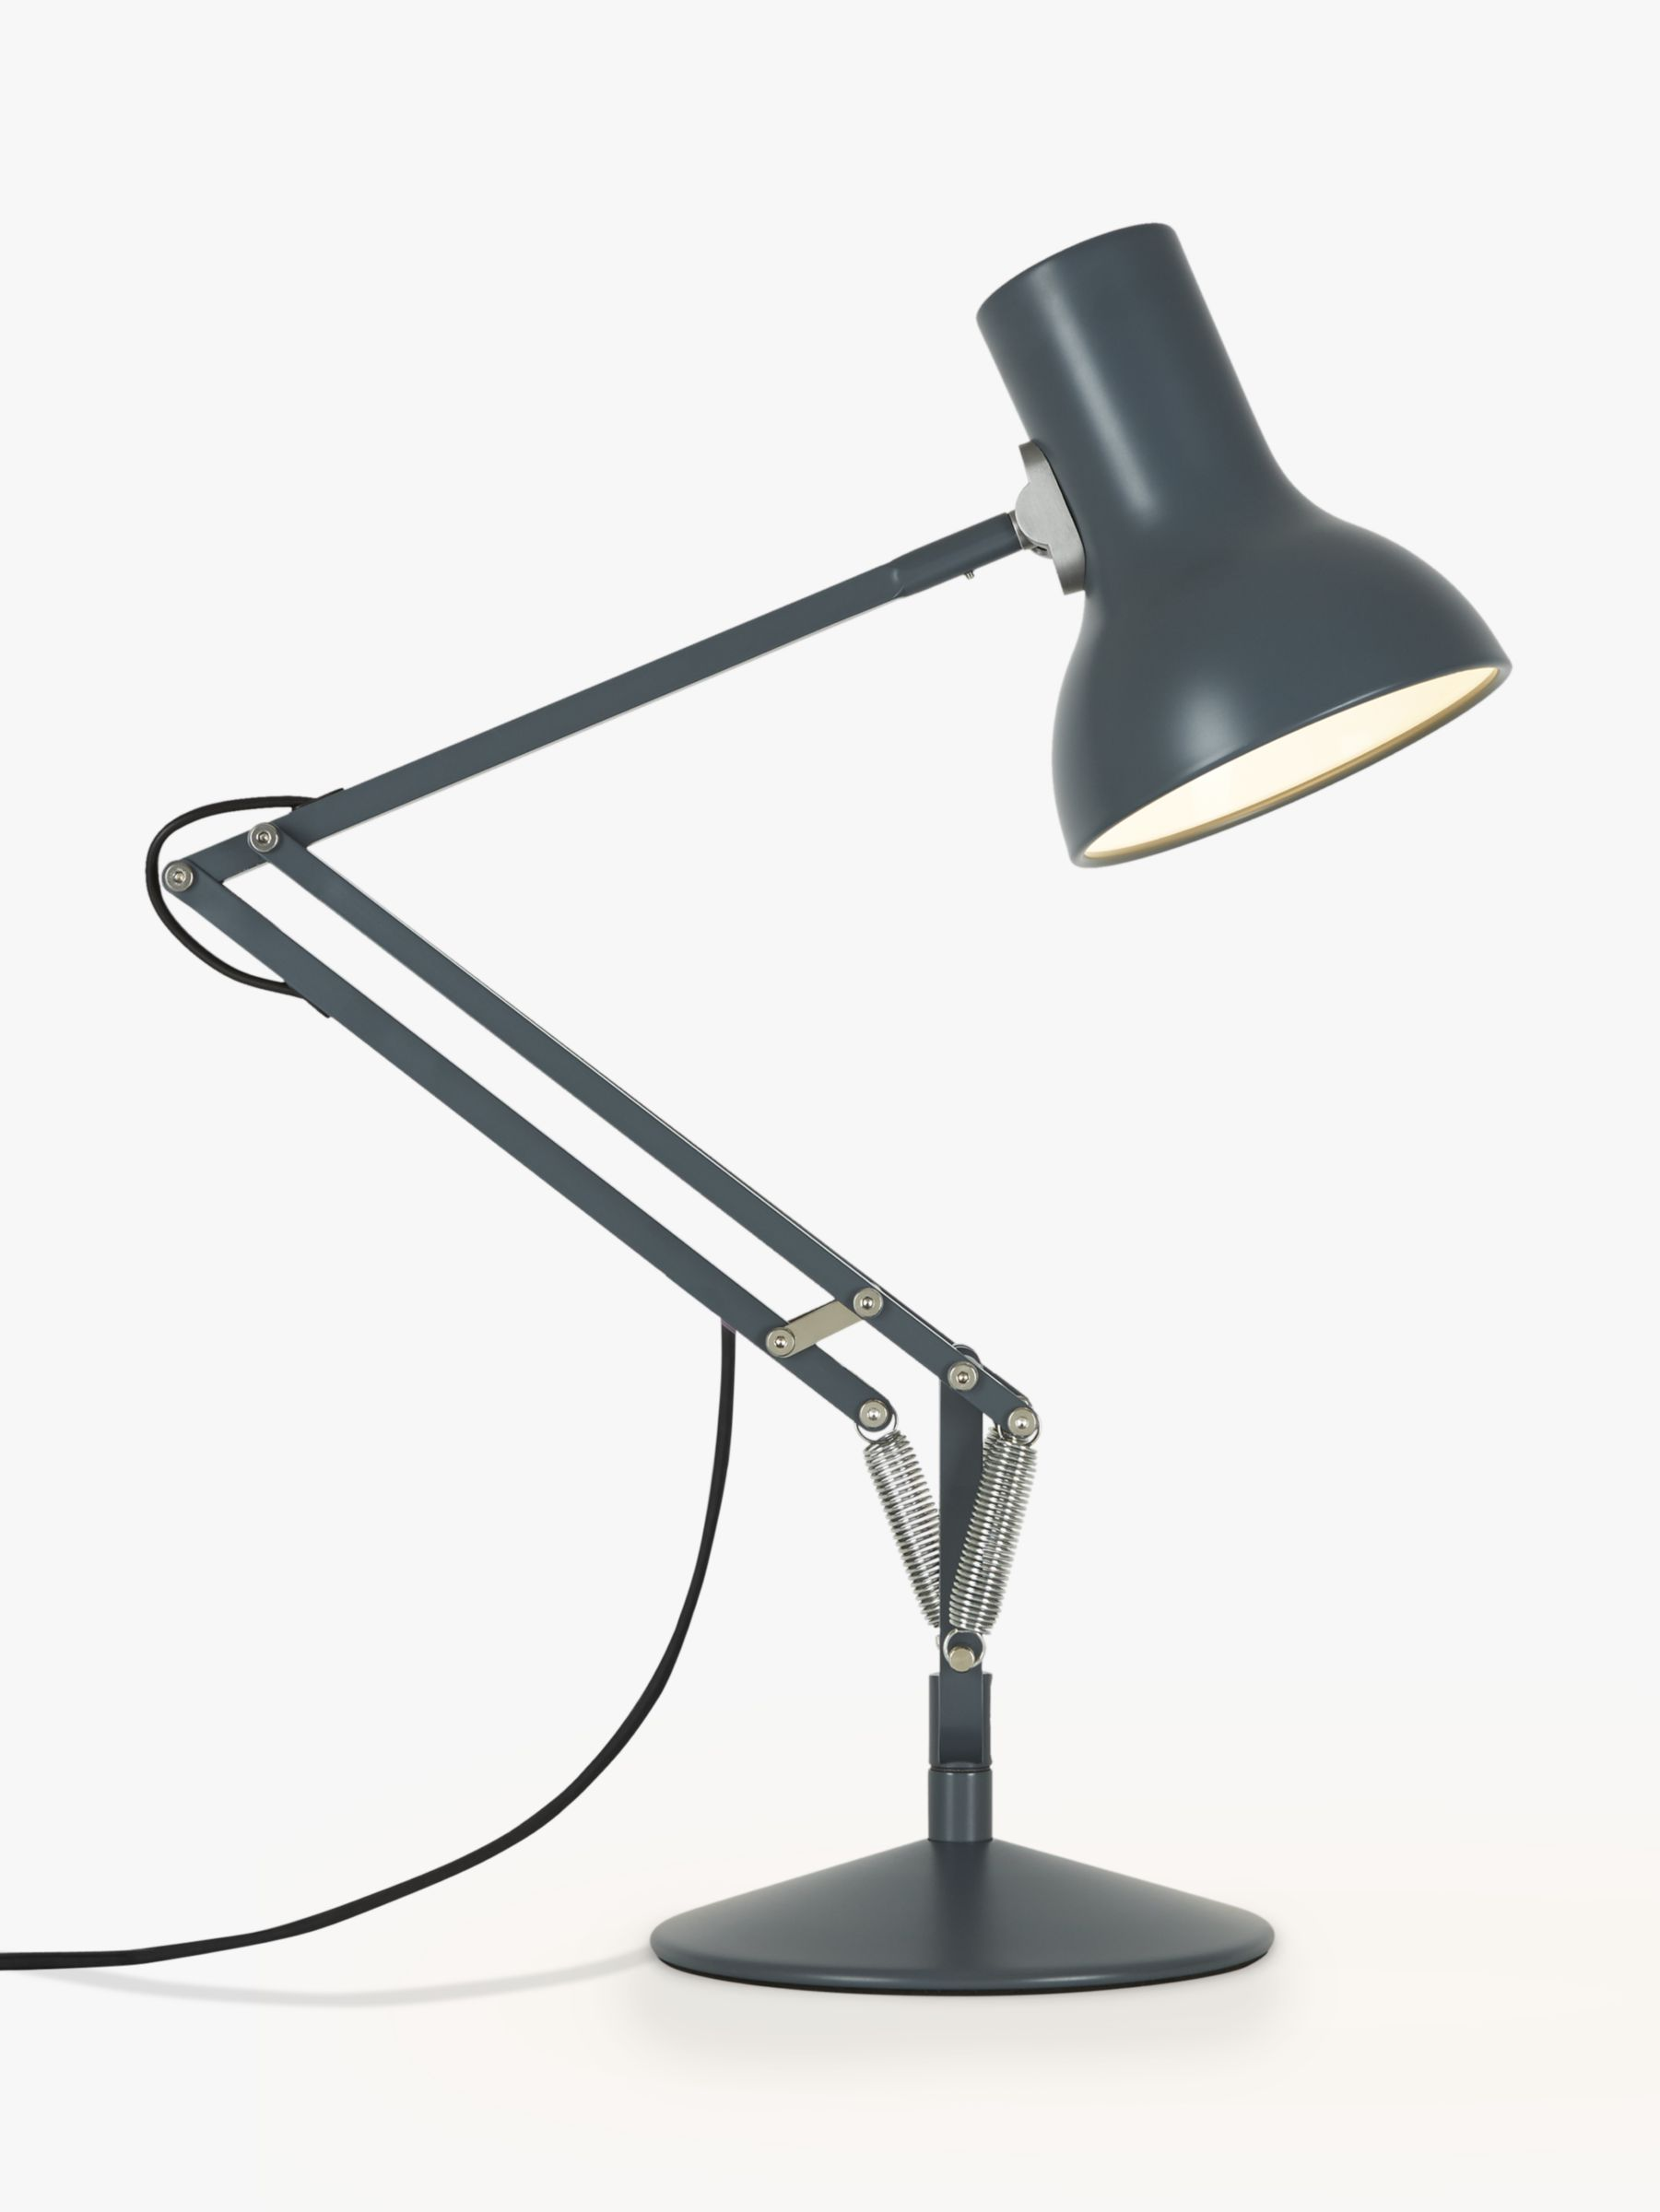 Anglepoise Lamp Anglepoise Type75 Mini Desk Lamp At John Lewis